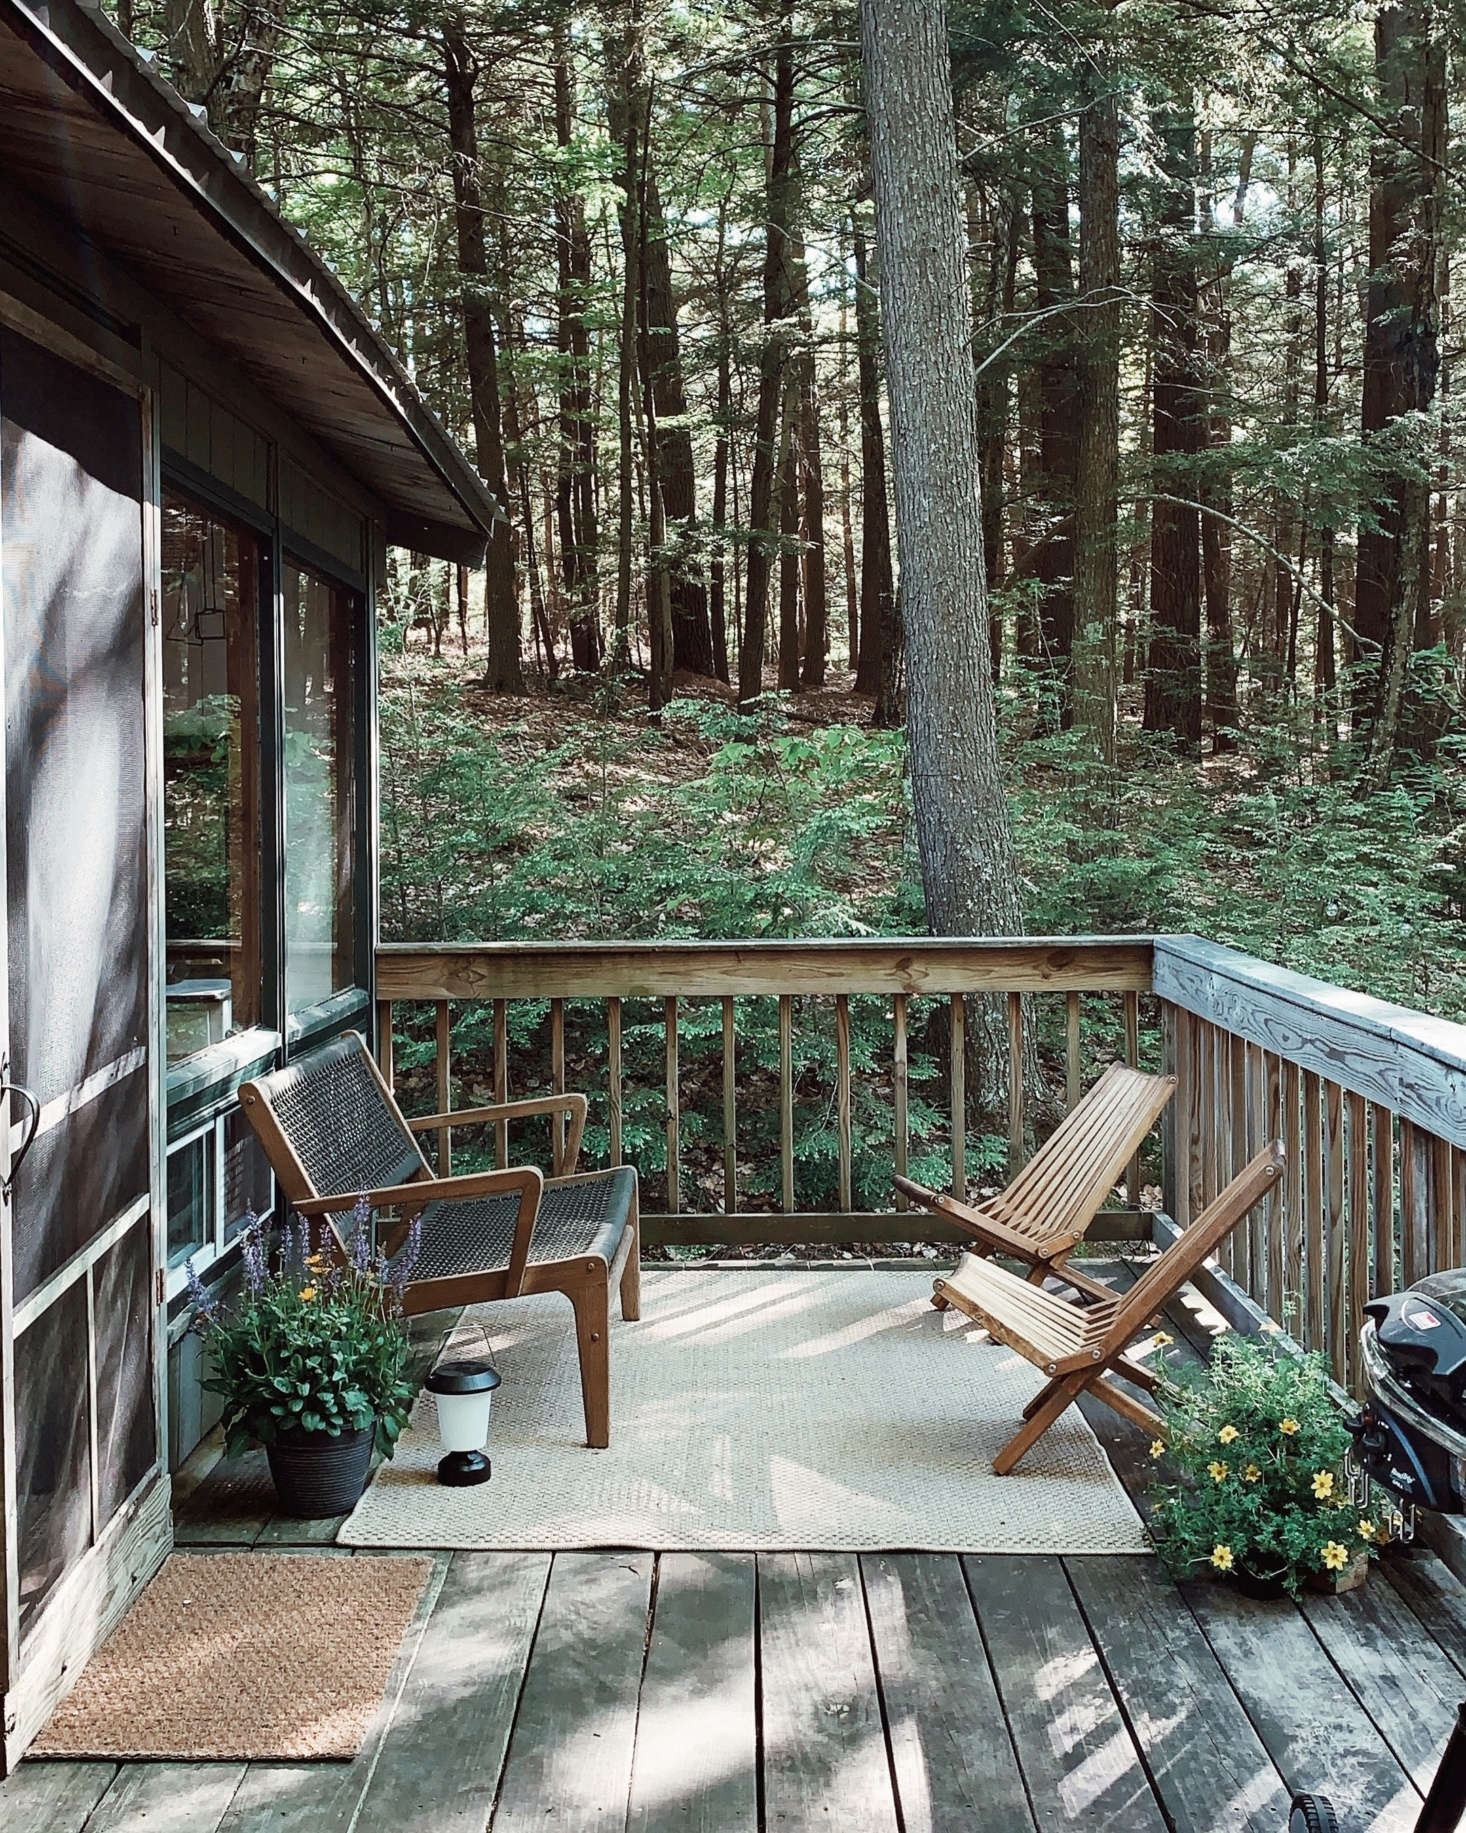 """The deck is a quiet place for reading or relaxing. It also serves as a spot for outdoor showers, of sorts: """"When we need to take a 'shower,' we put one of our eight-gallon water jugs on the edge of our deck, right above a built-out shower platform, then open the spigot and run down to stand underneath!"""" Saunders says."""